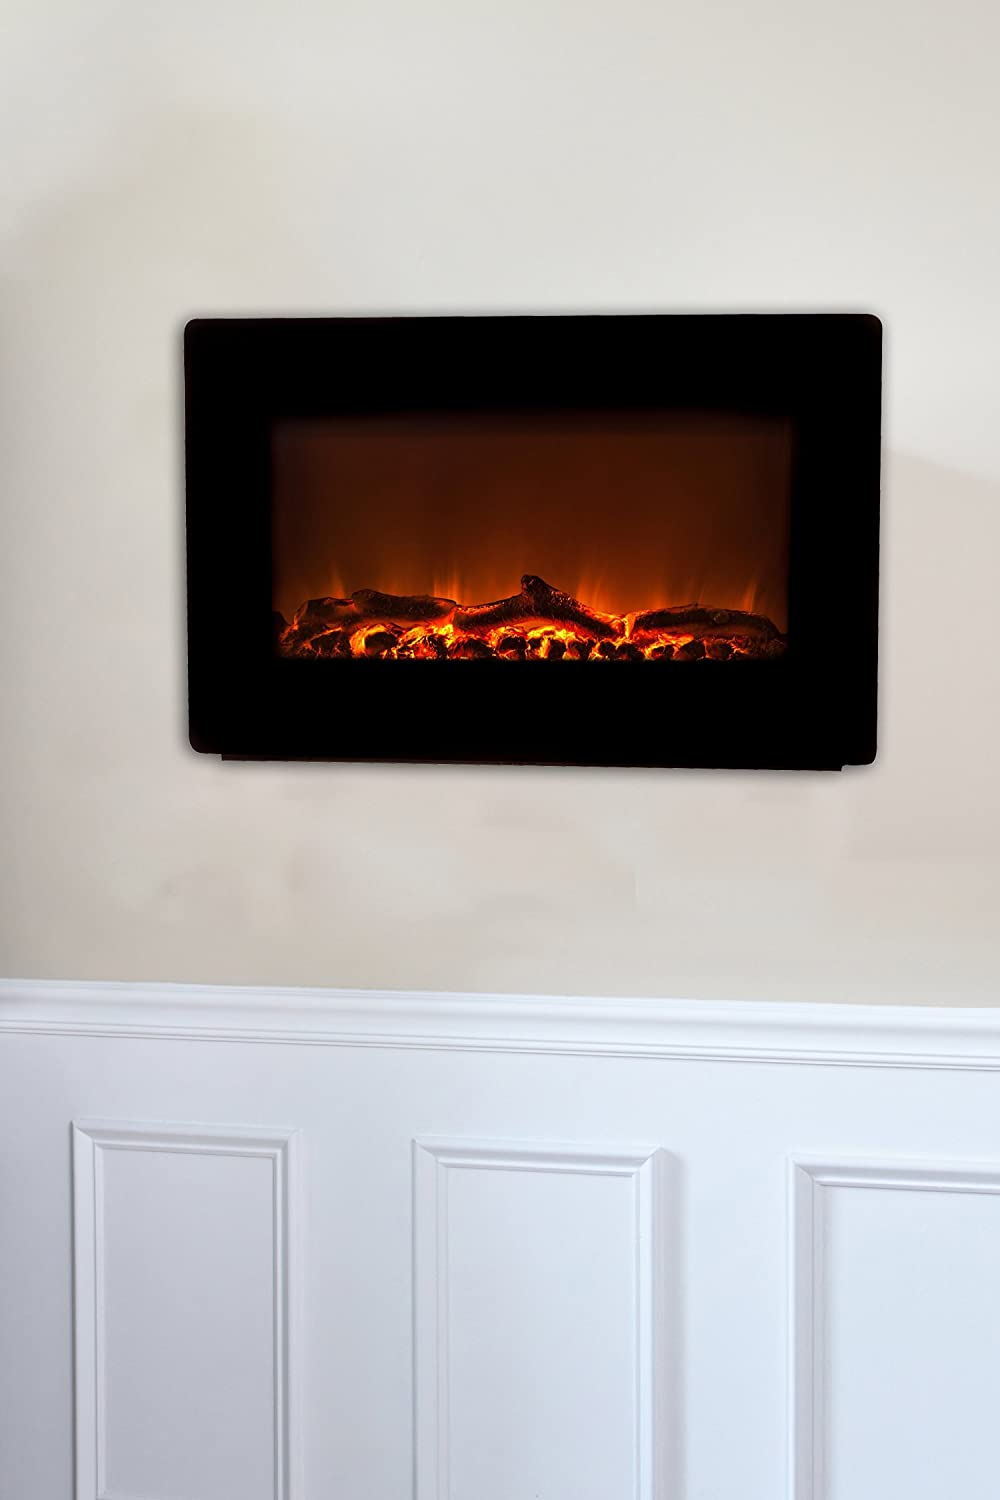 p bk real mounted fireplaces black wall in fireplace electric mount dinatale flame